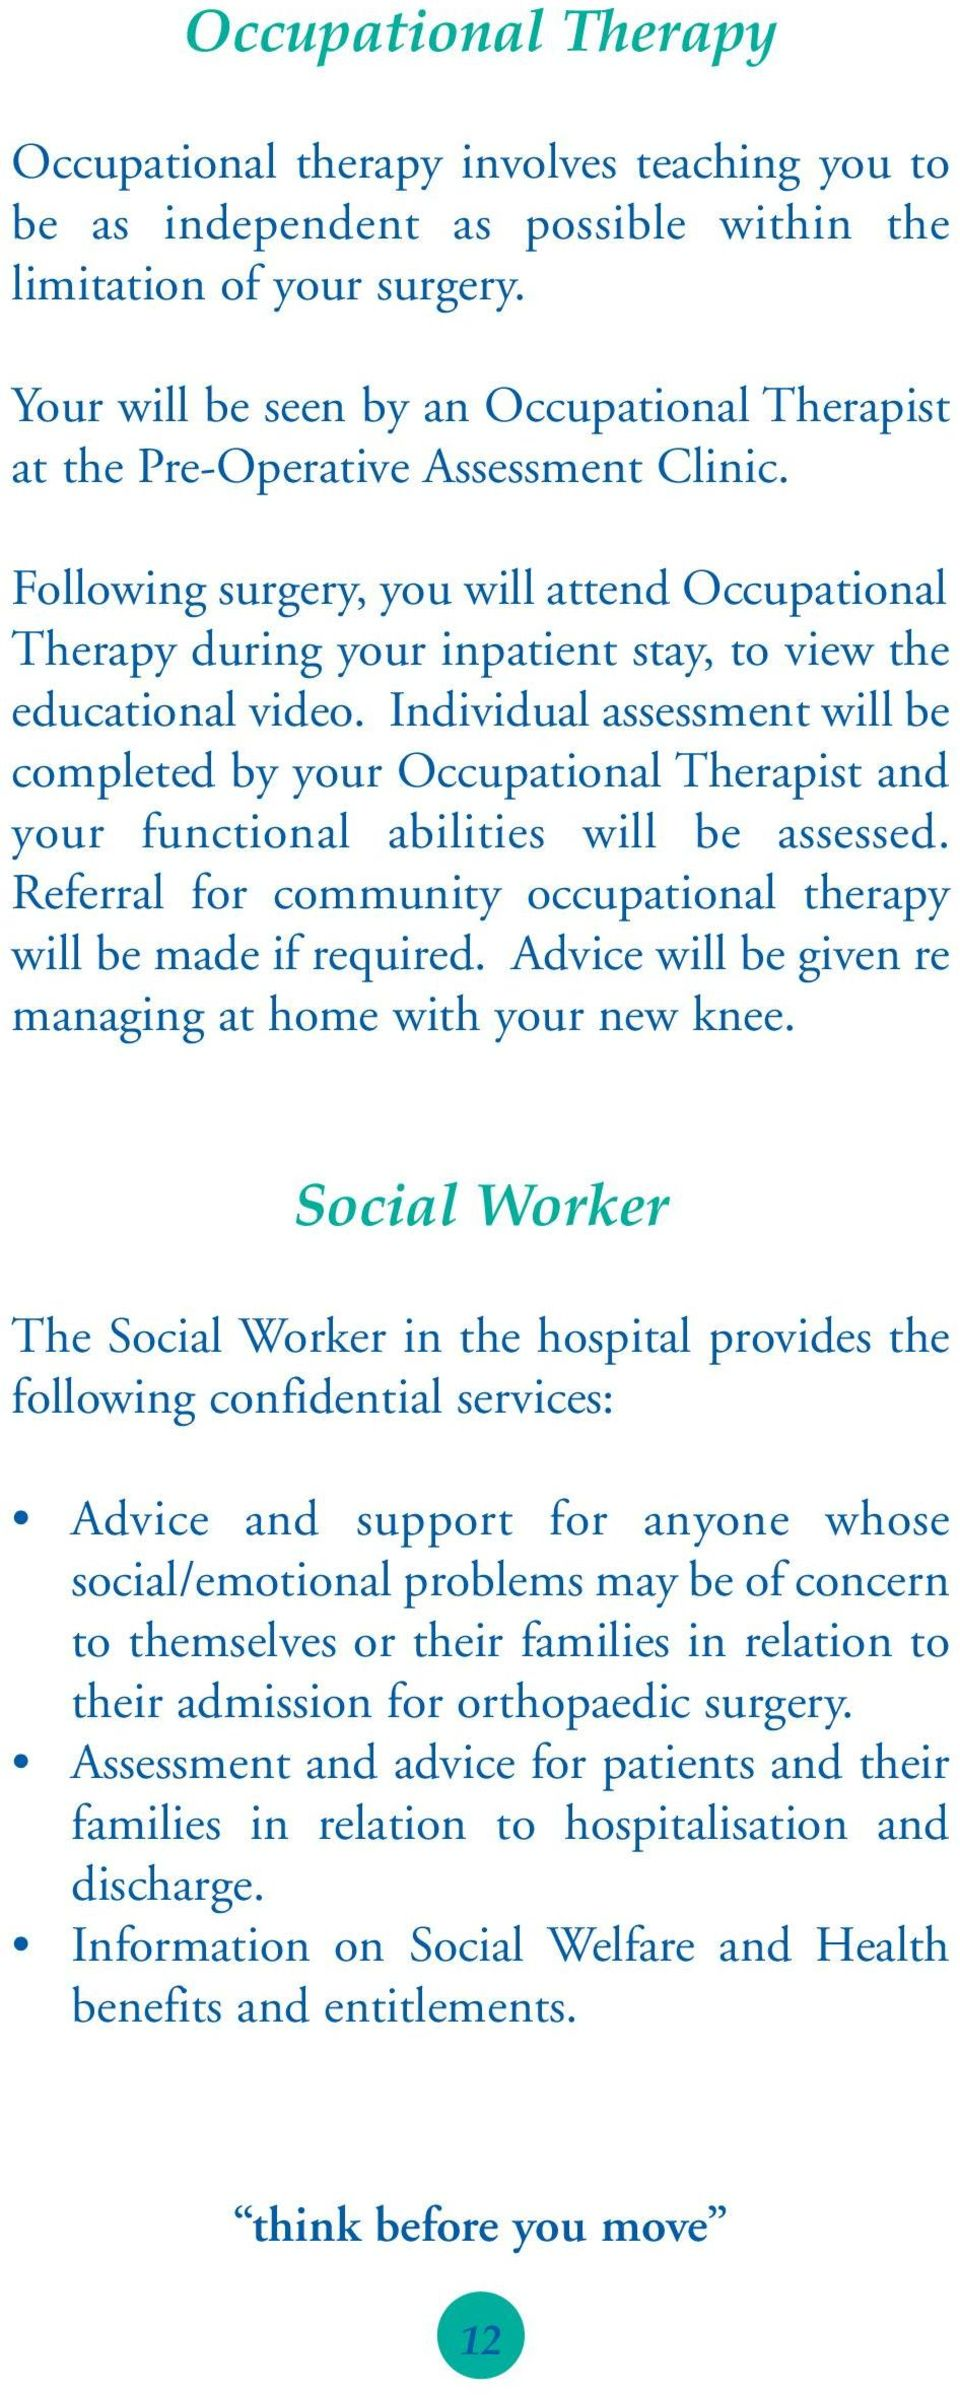 Following surgery, you will attend Occupational Therapy during your inpatient stay, to view the educational video.